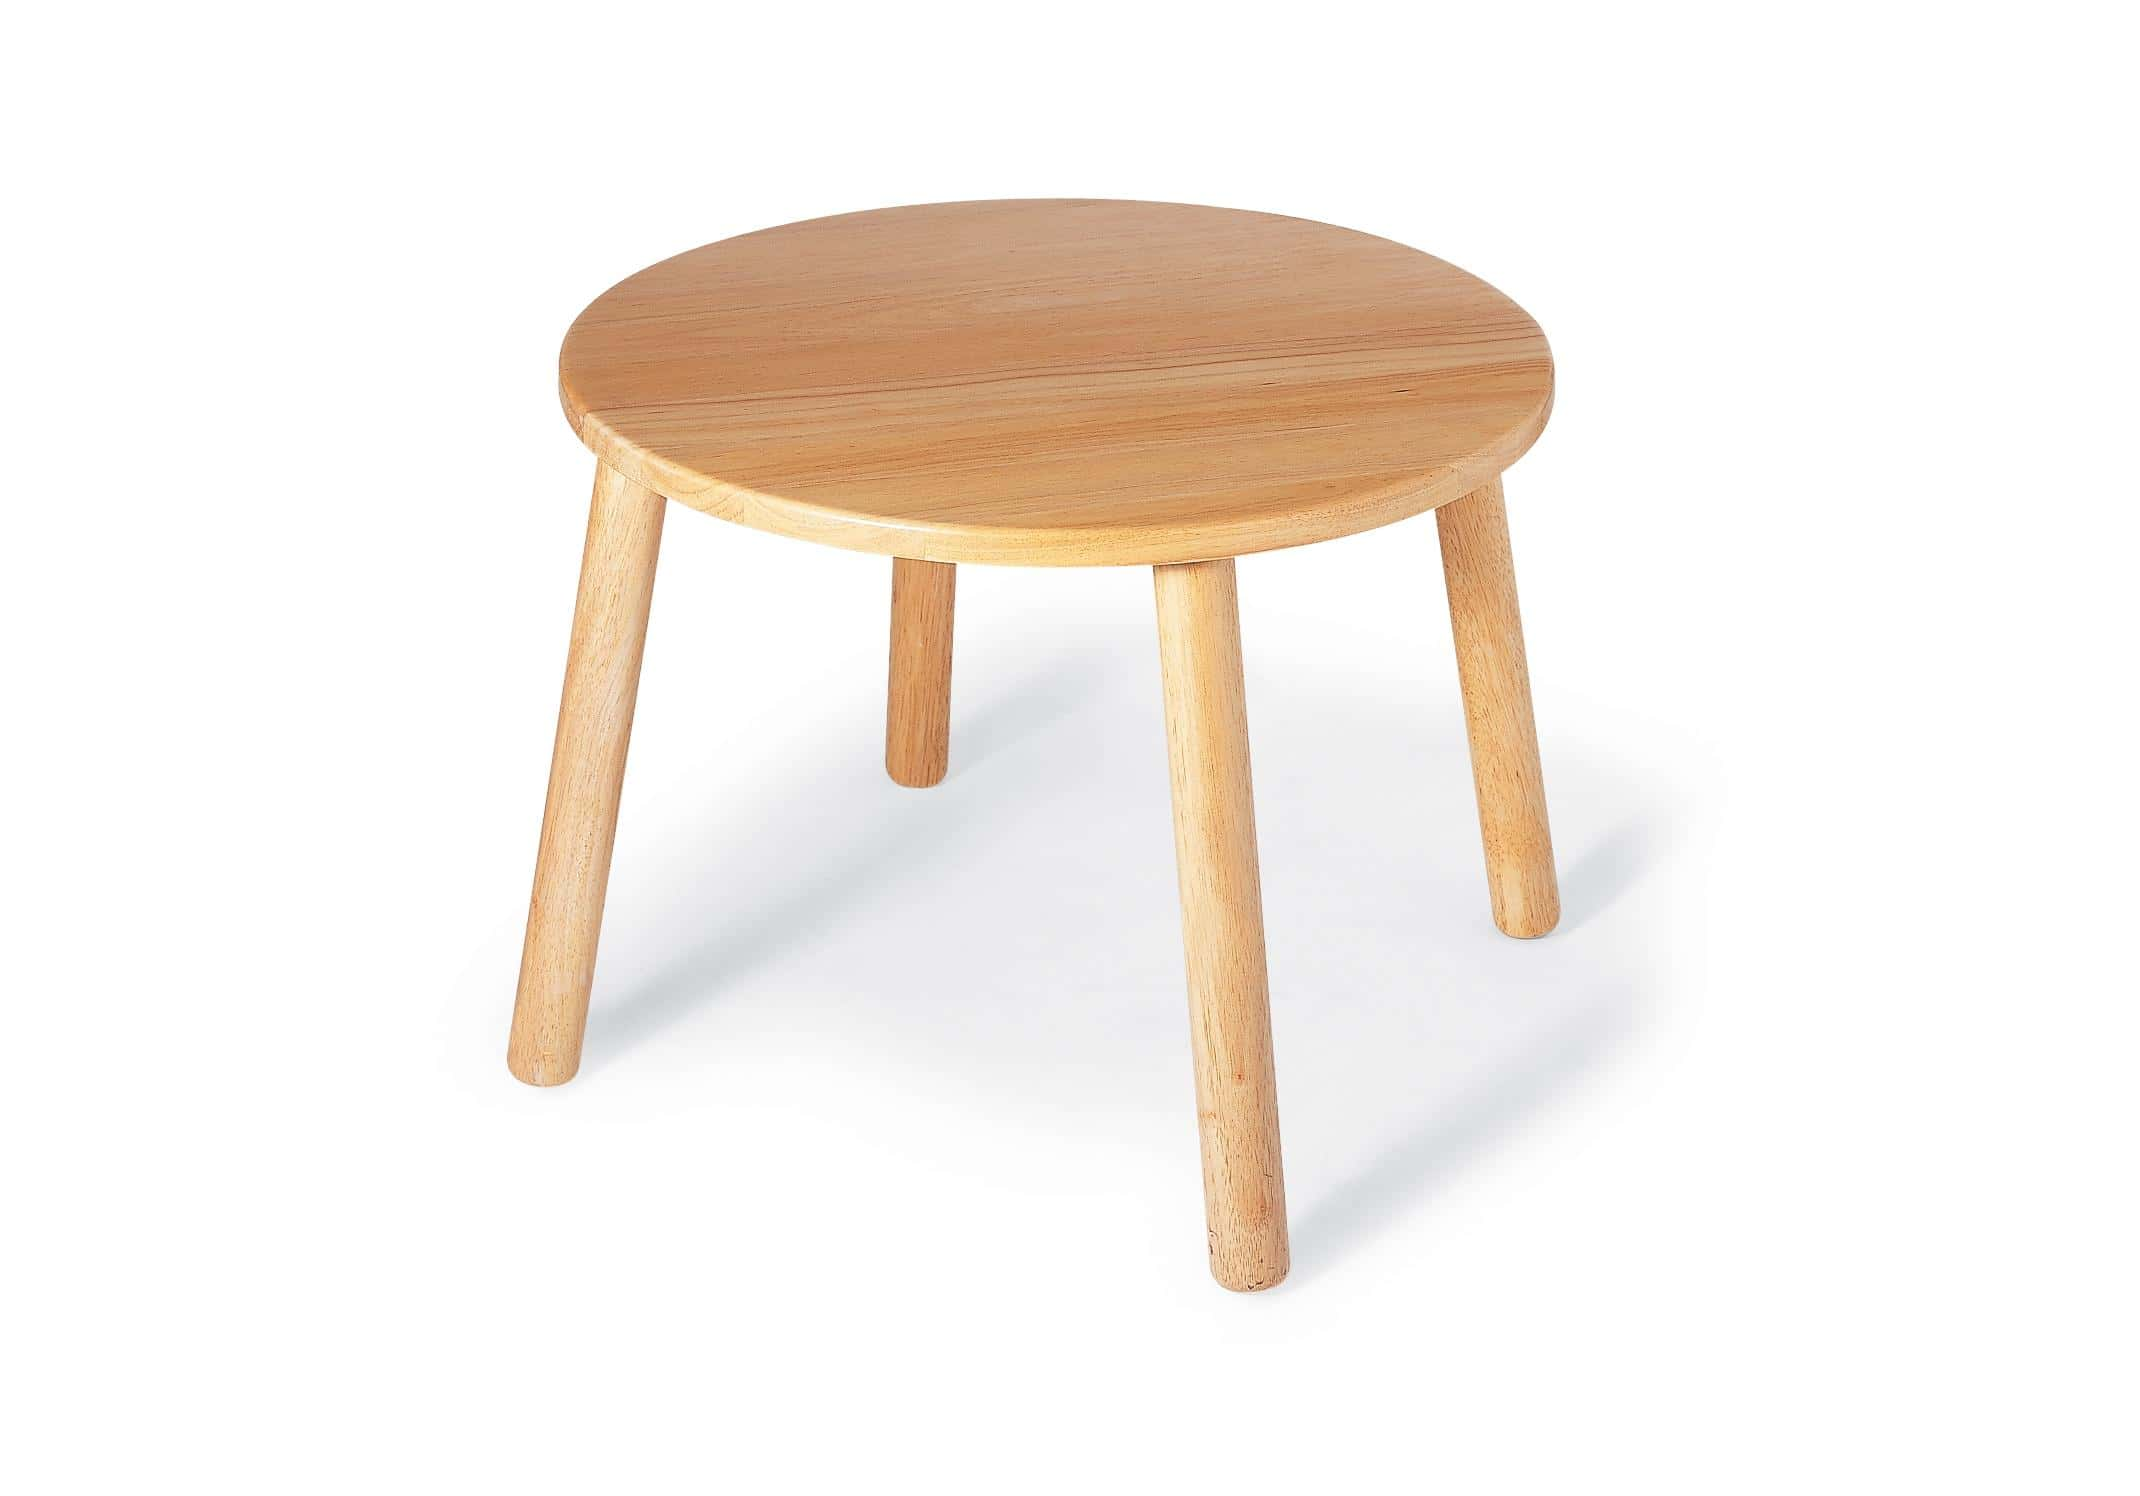 Simple Round Wood Table Tops